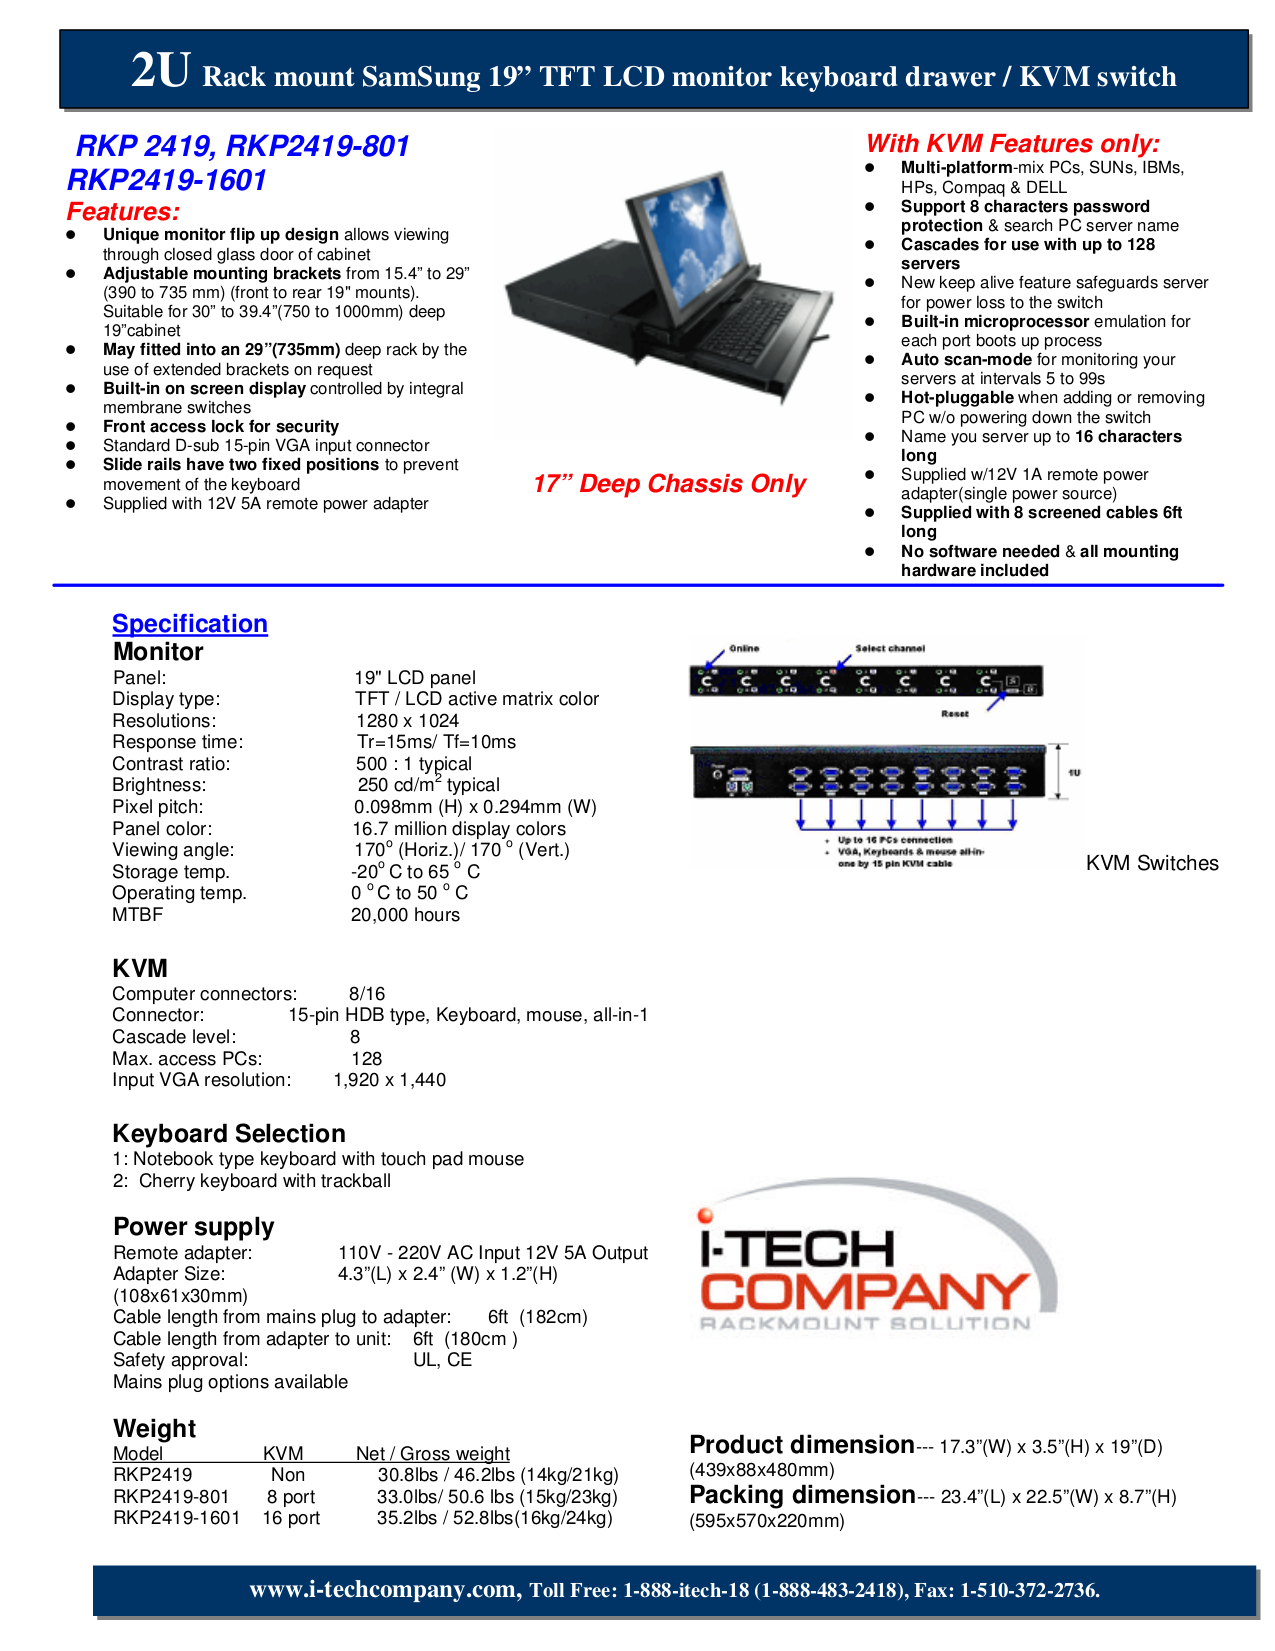 pdf for I-Tech Other RKP2419-1601 Keyboard Drawers manual